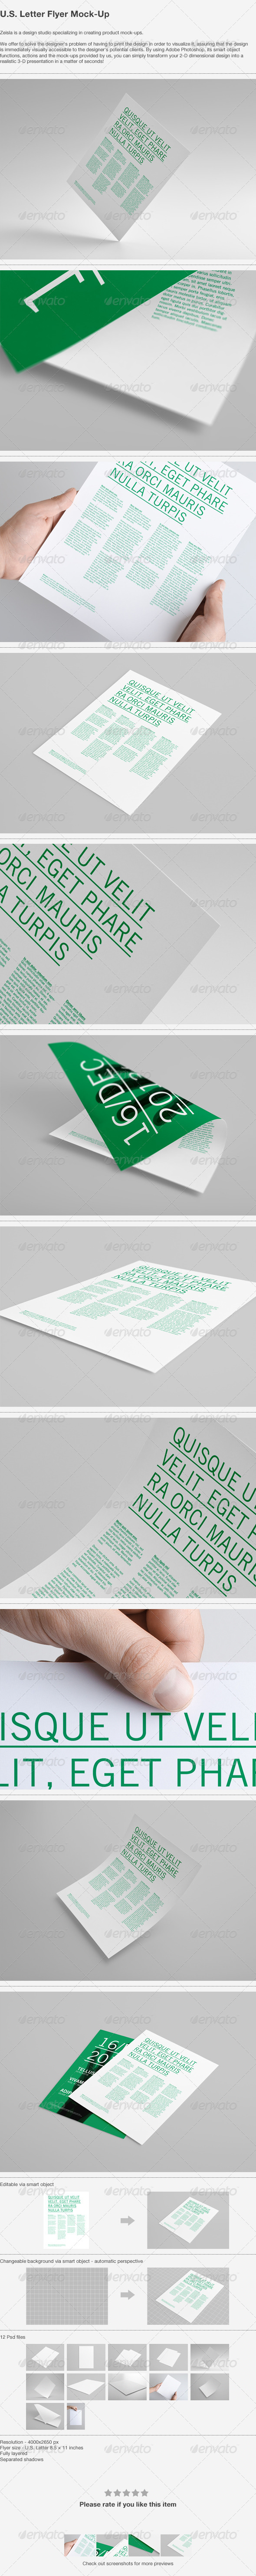 U.S. Letter Flyer Mock-Up - Print Product Mock-Ups